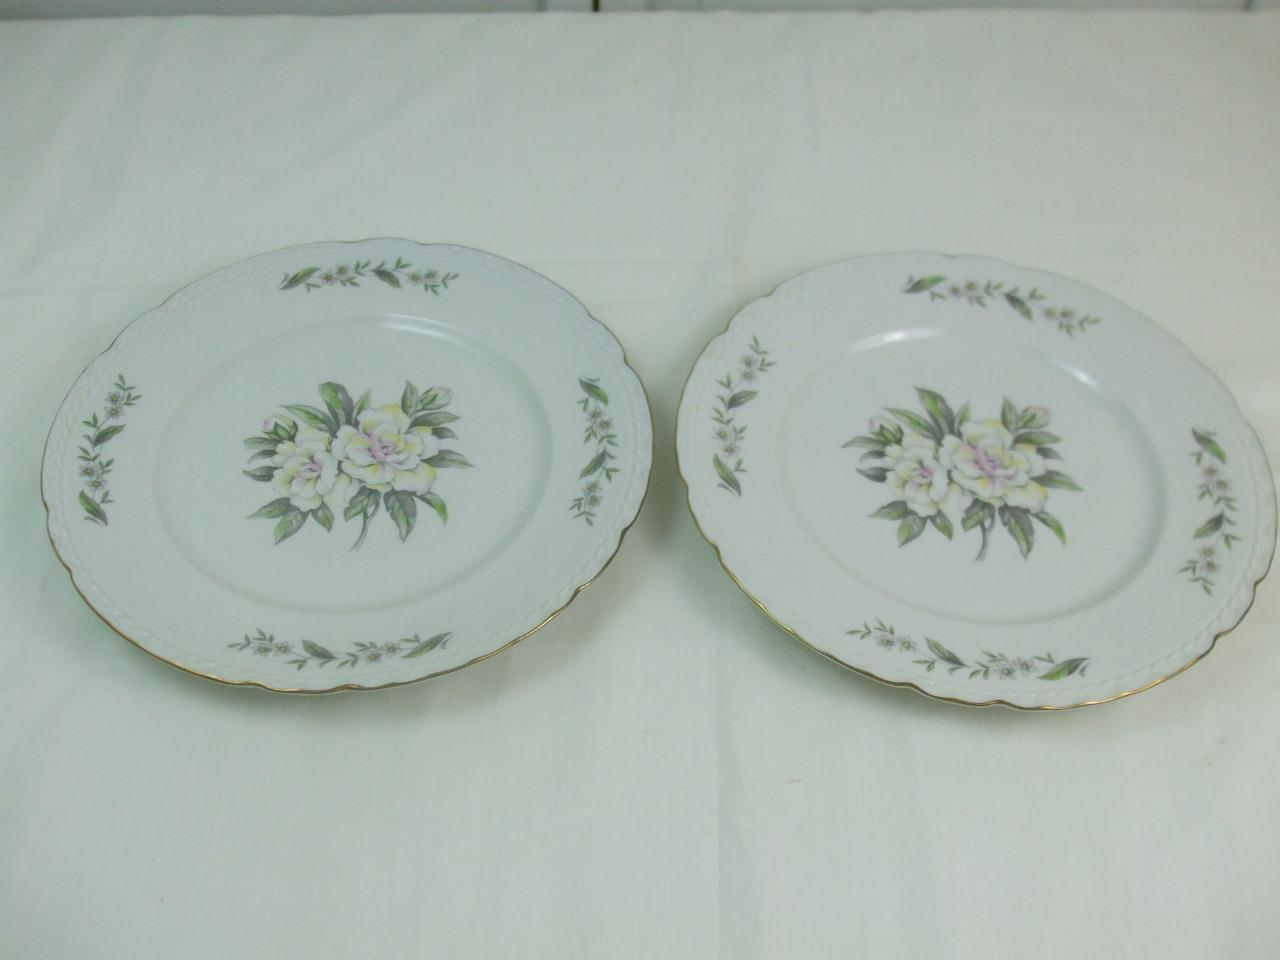 Primary image for 2 Dinner Plates Gardenia Pattern Gold Edges Embassy USA Vitrified China 10.25""